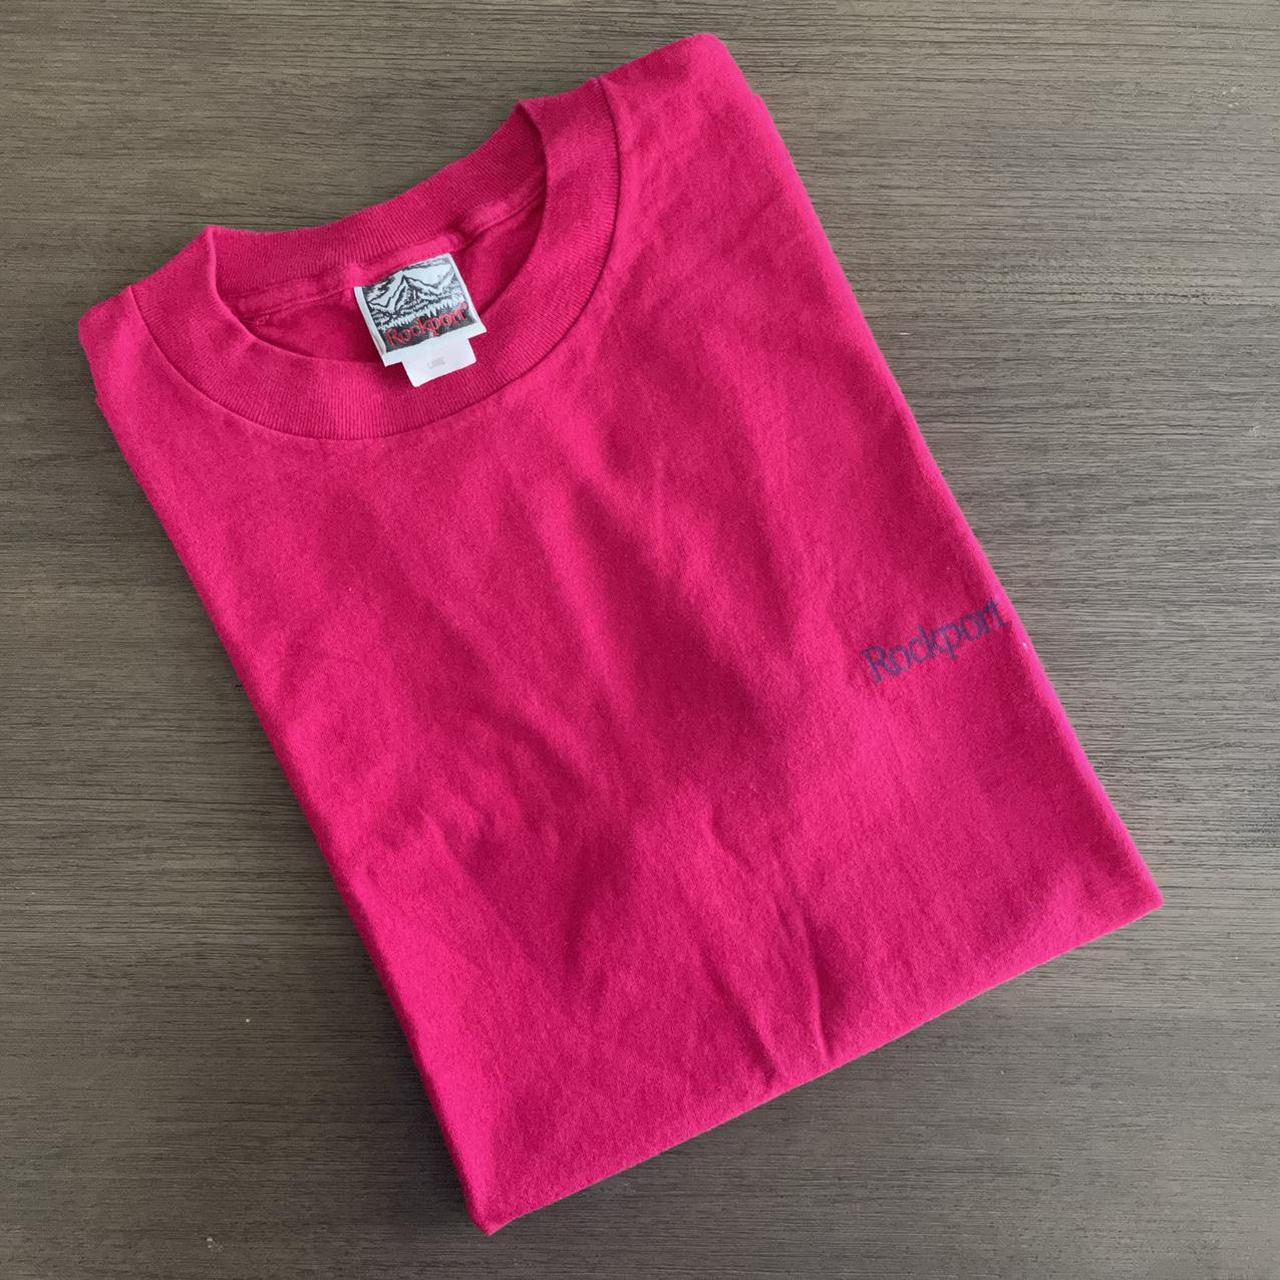 Product Image 1 - Vintage Rockport Graphic T Shirt  Great